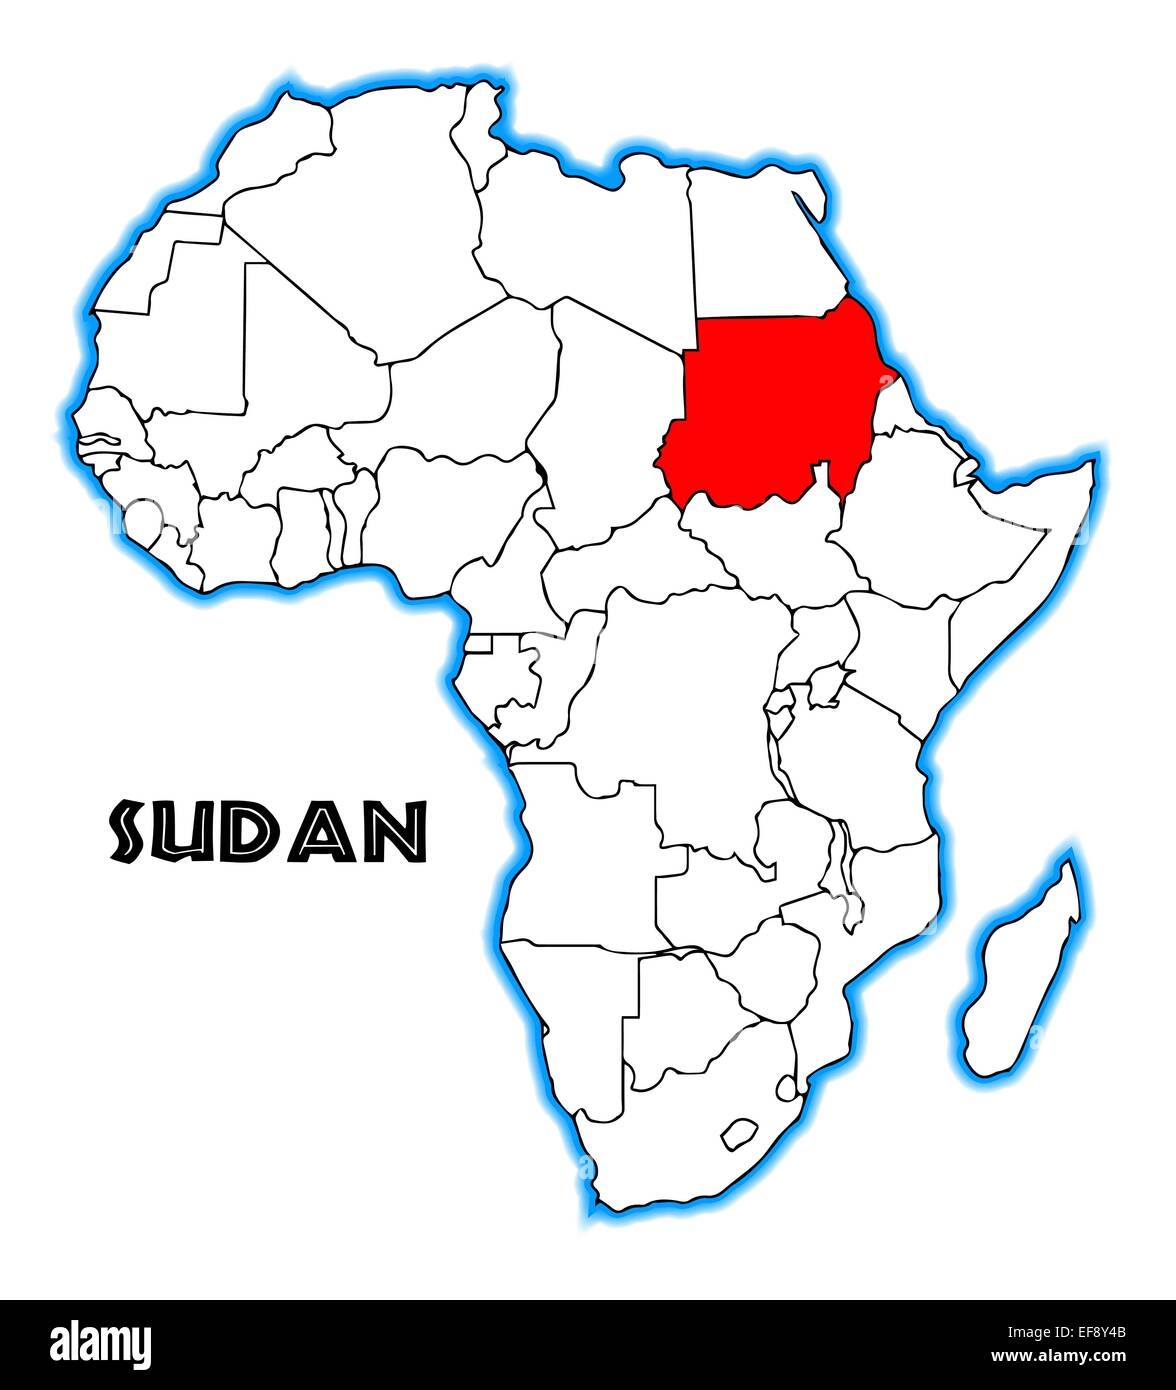 Sudan outline inset into a map of Africa over a white background